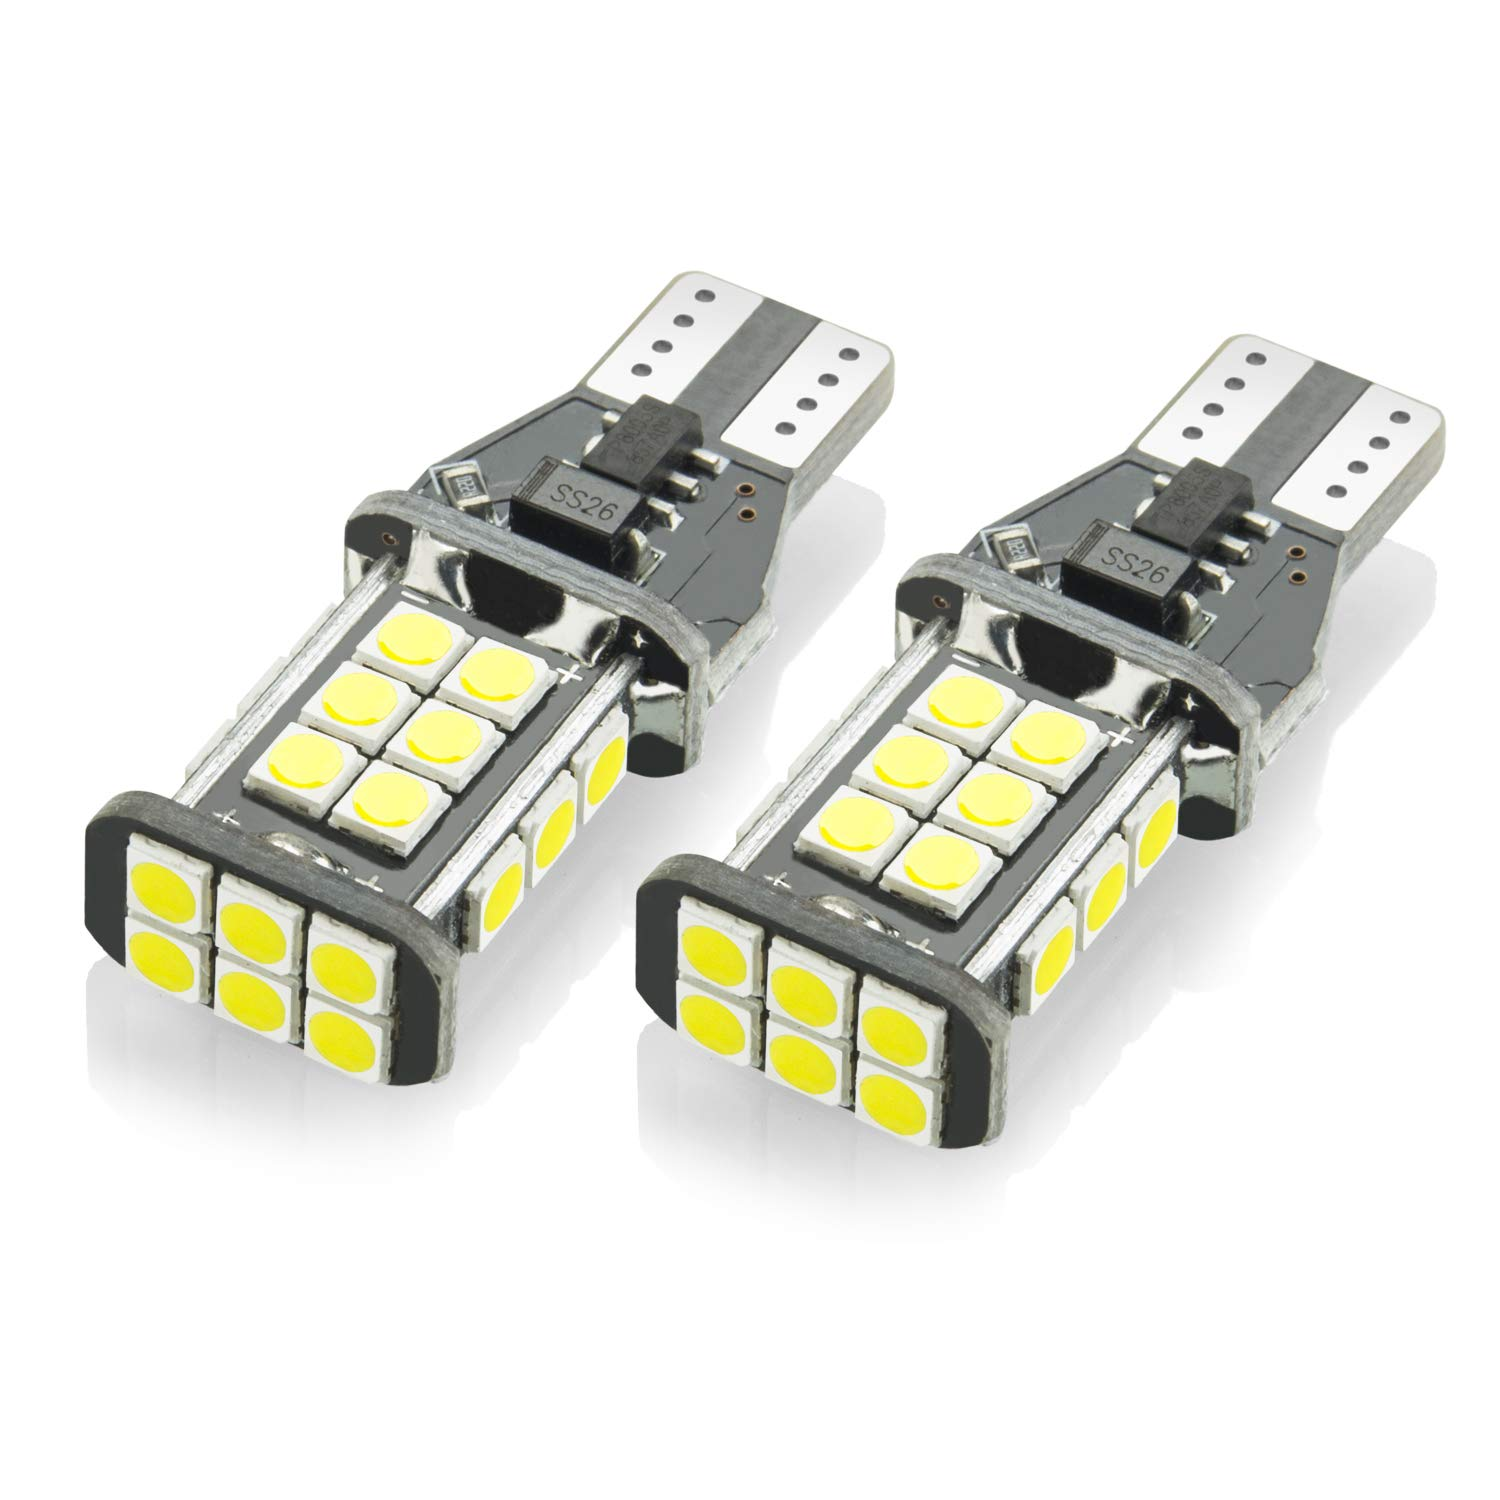 YIJINSHENG 2PCS 1100 lumens Bright Error Canbus Extremely Bright 3030 Chipsets T15 912 W16W 921 LED Bulbs For Backup Reverse Lights 24D Xenon White